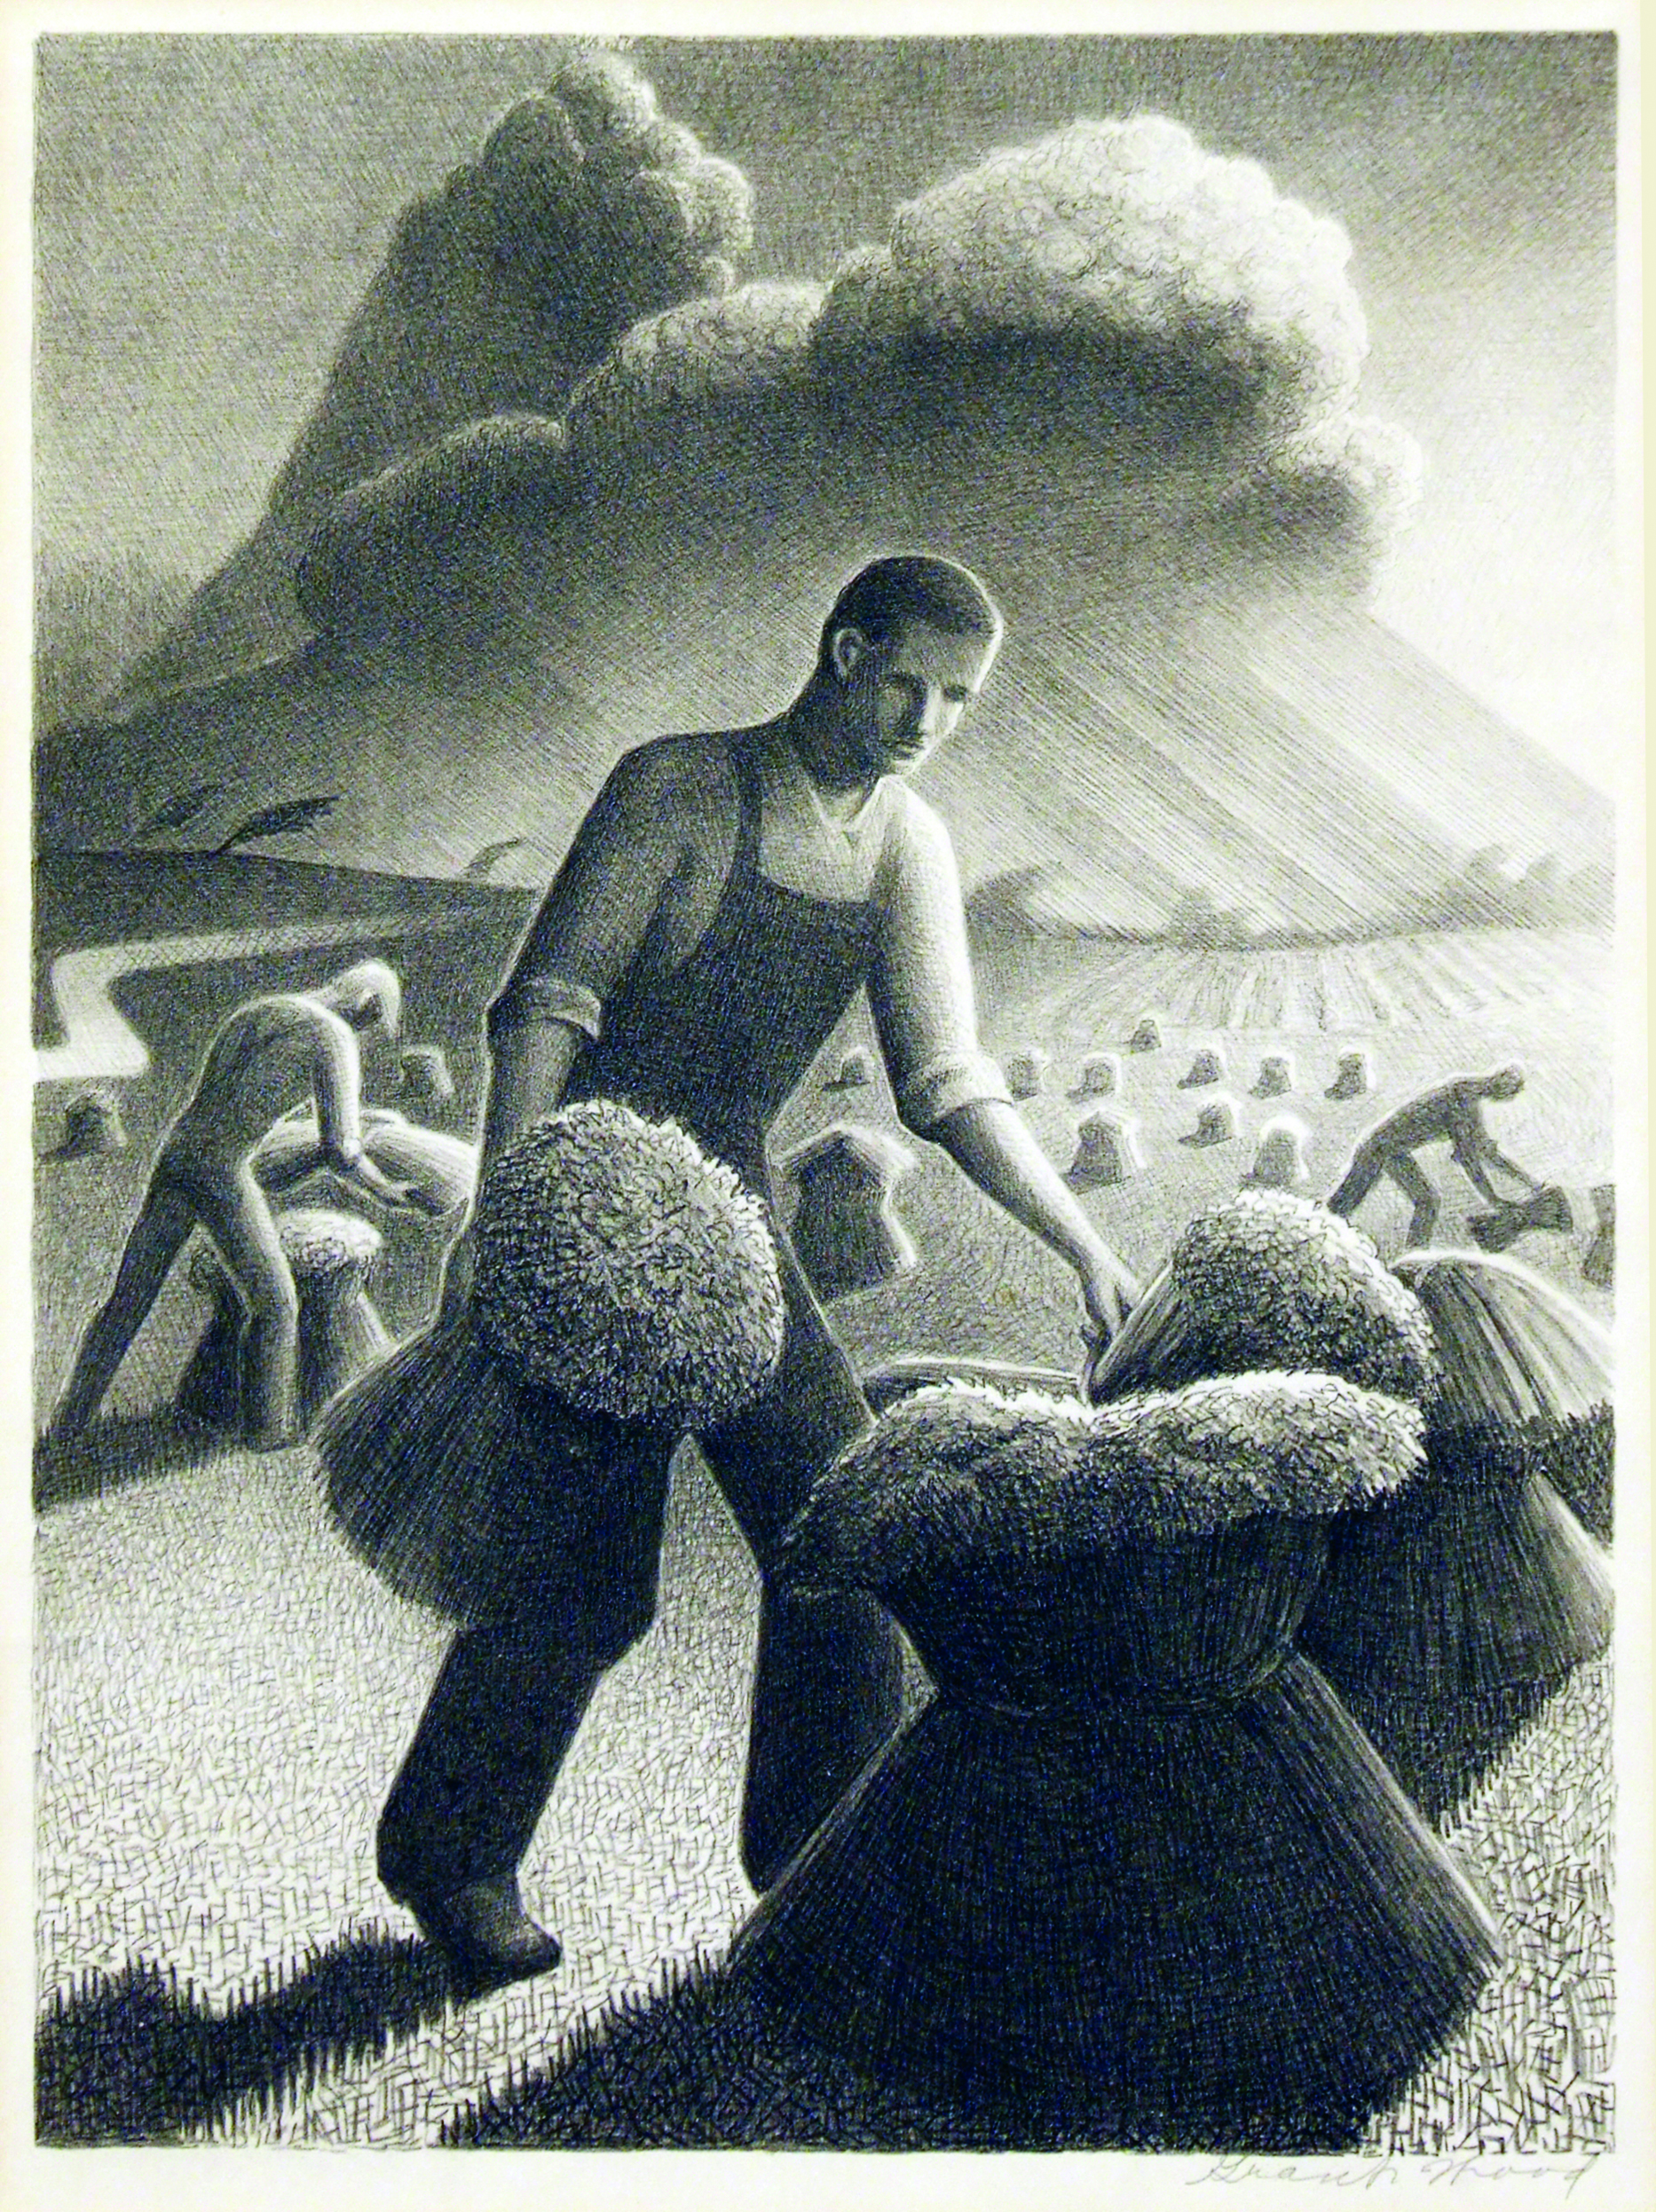 2005.005.71 | Grant Wood | APPROACHING STORM | lithograph | 12 x 9"